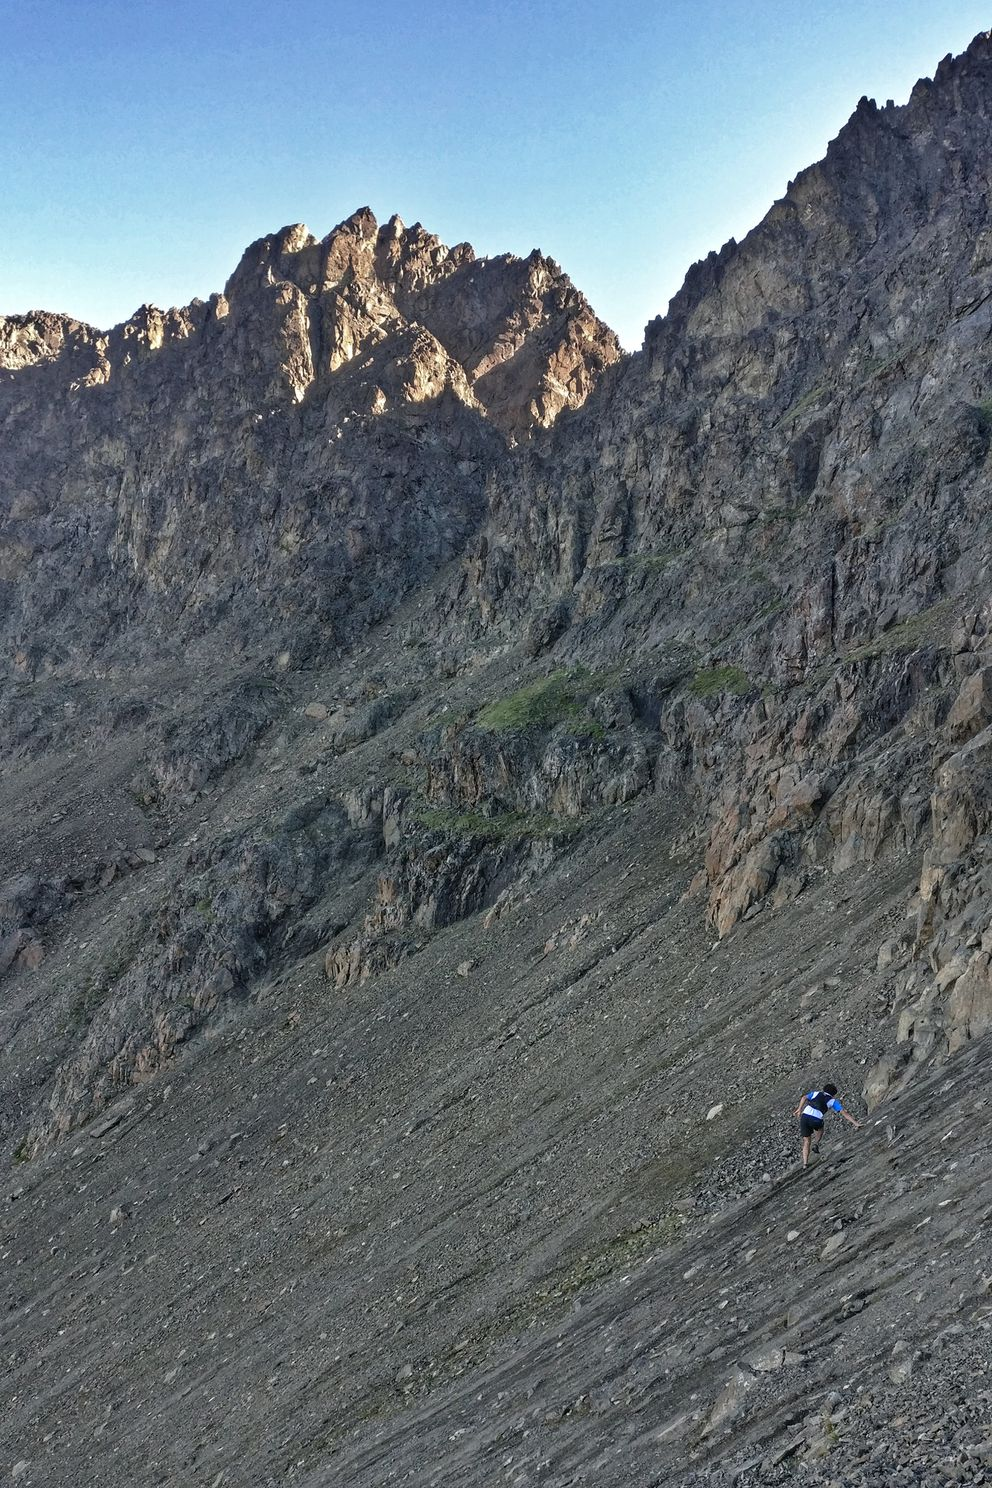 Peter Mamrol navigates scree on his way between The Ramp and Hidden Peak, two of the 12 peaks he and Lars Arneson climbed in a single day earlier this month. (Photo by Lars Arneson)